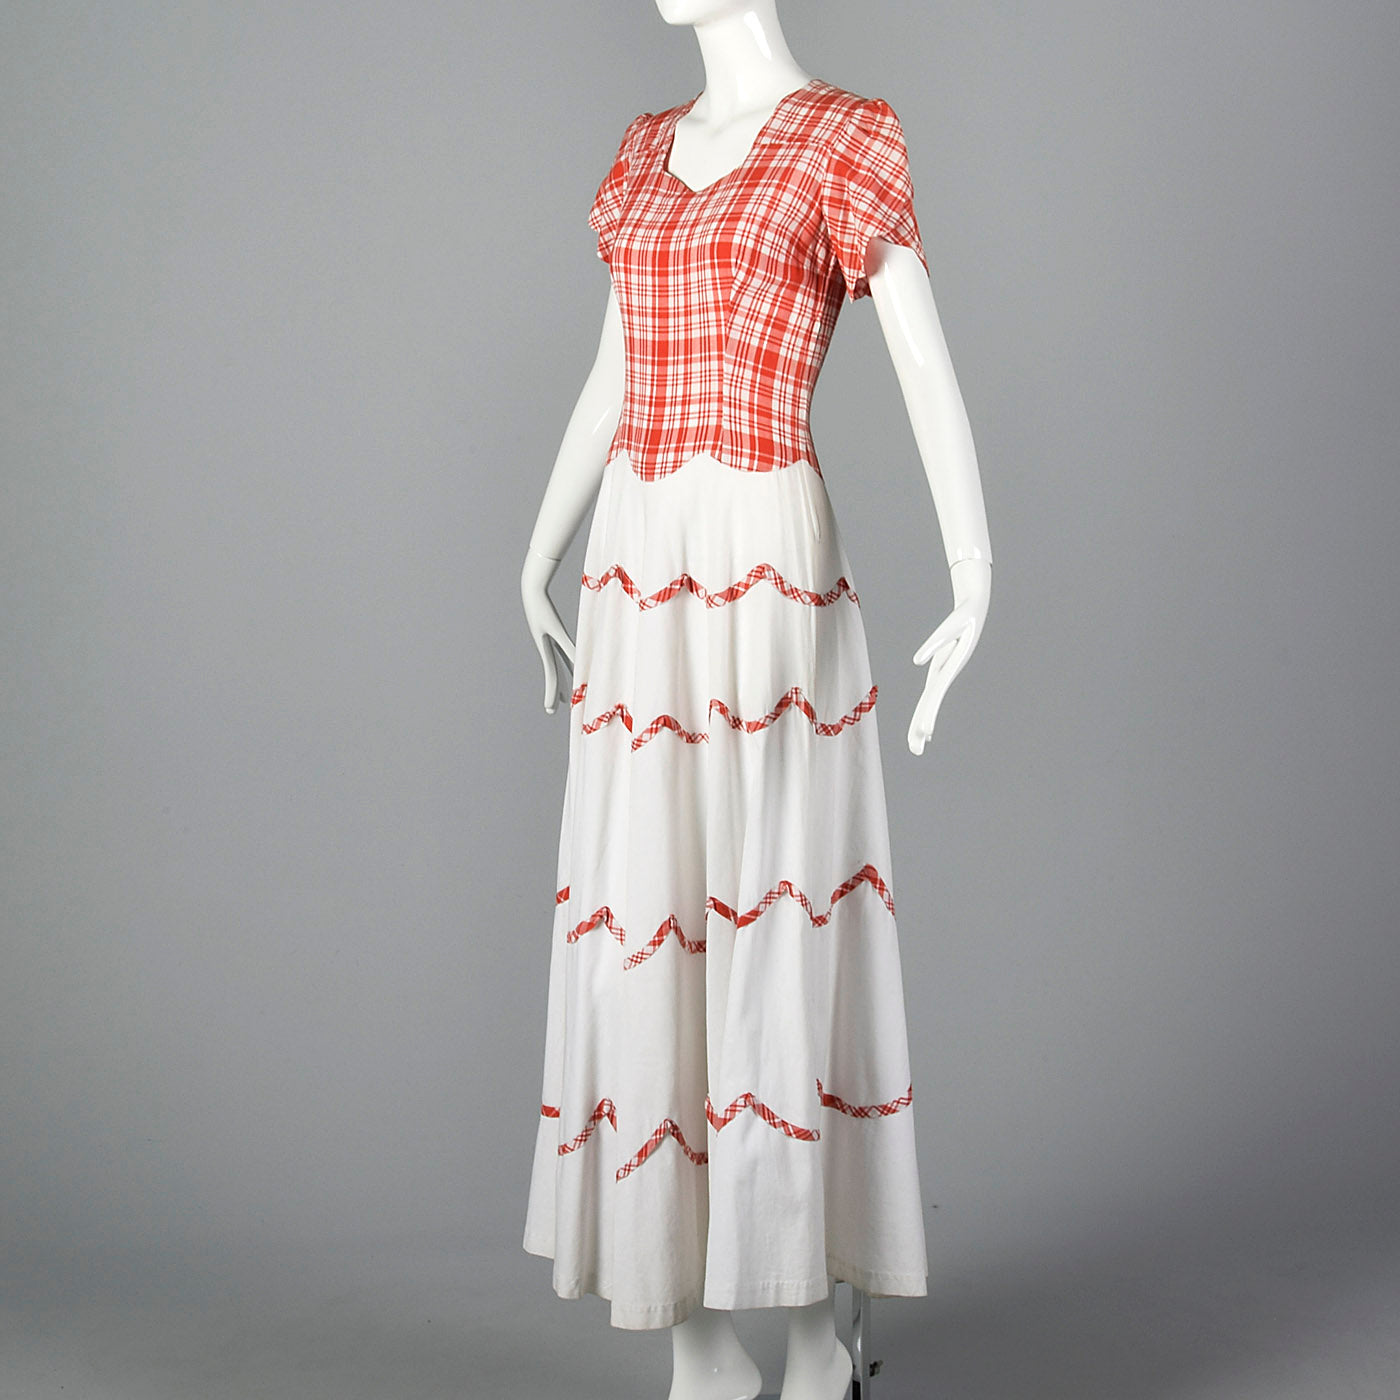 1940s Long Day Dress with Scallop Details